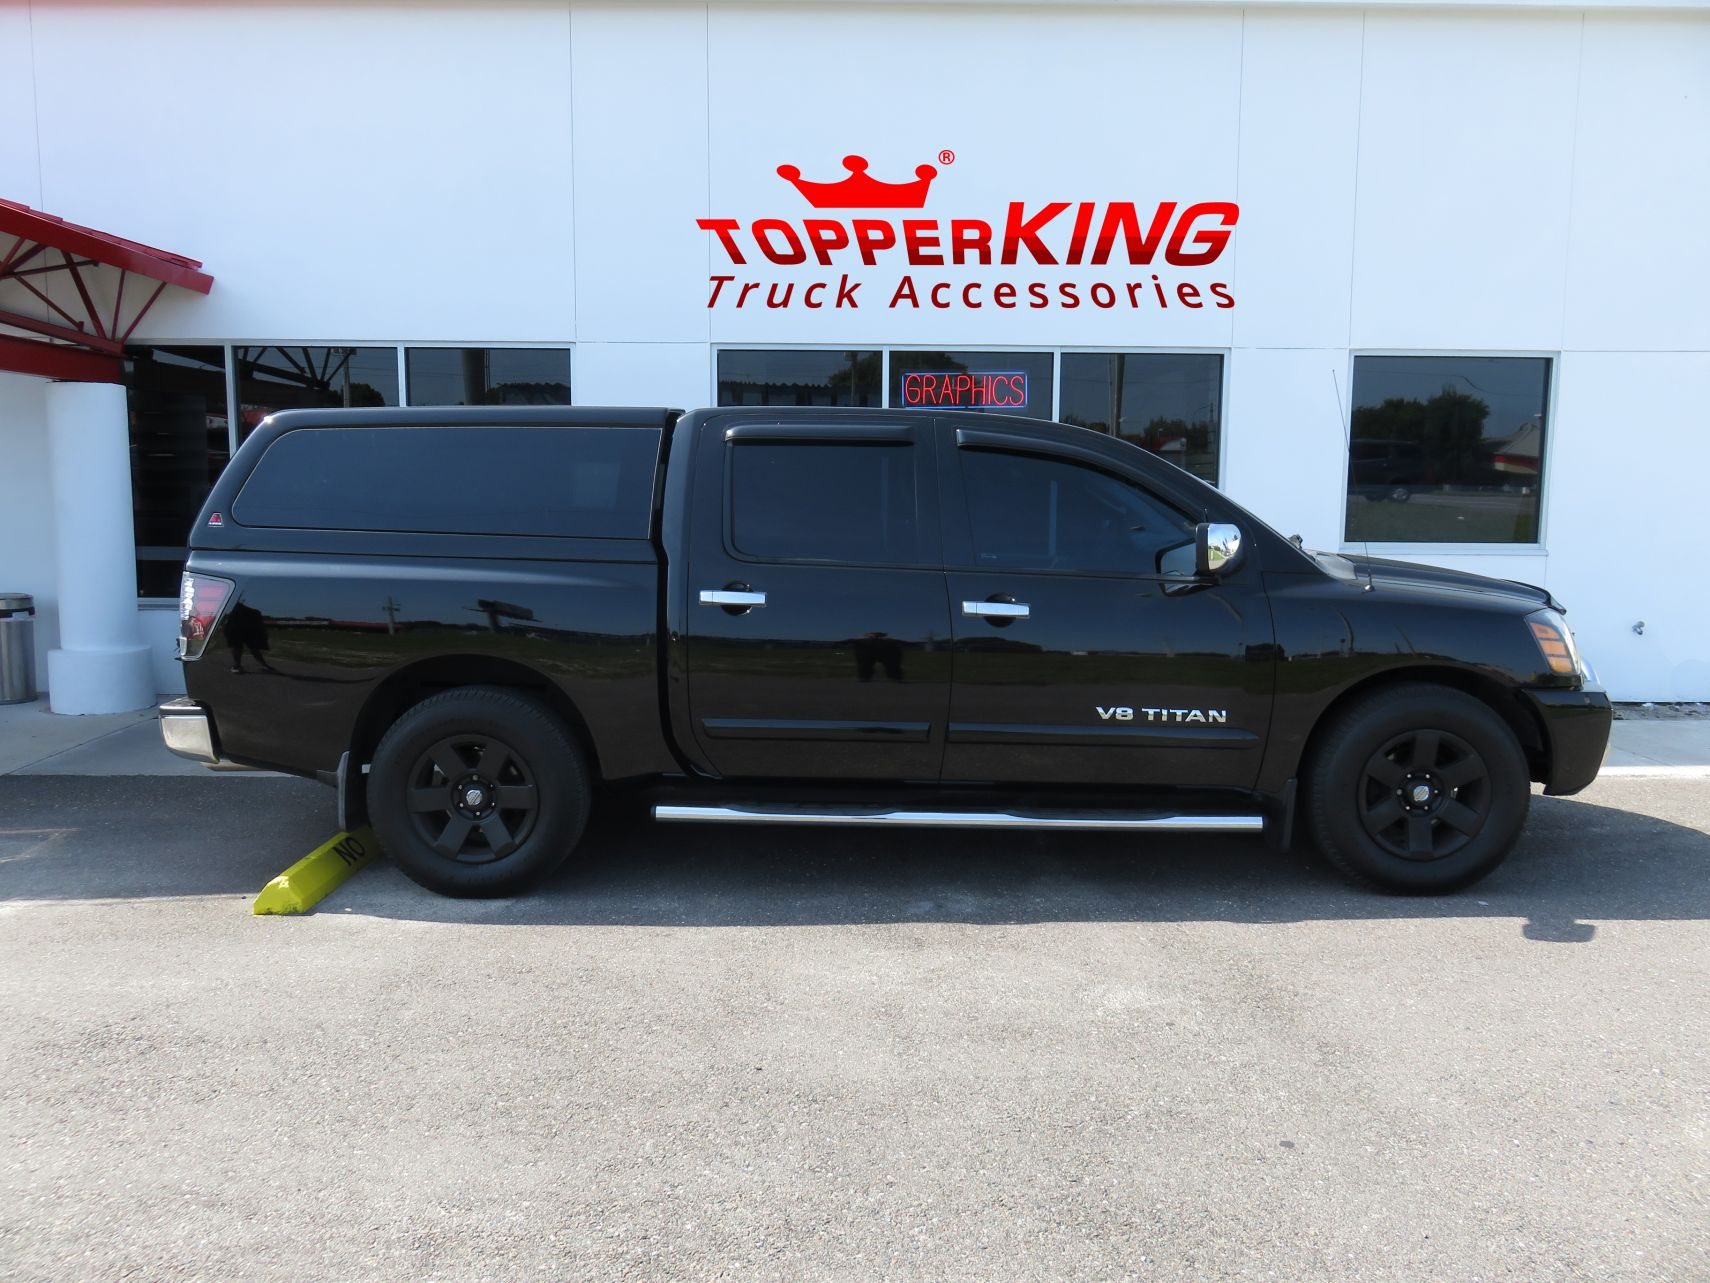 2005 Nissan Titan with LEER 100XQ, Nerf bars, Chrome Accessories, Tint, Hitch by TopperKING Brandon 813-689-2449 or Clearwater FL 727-530-9066. Call today!